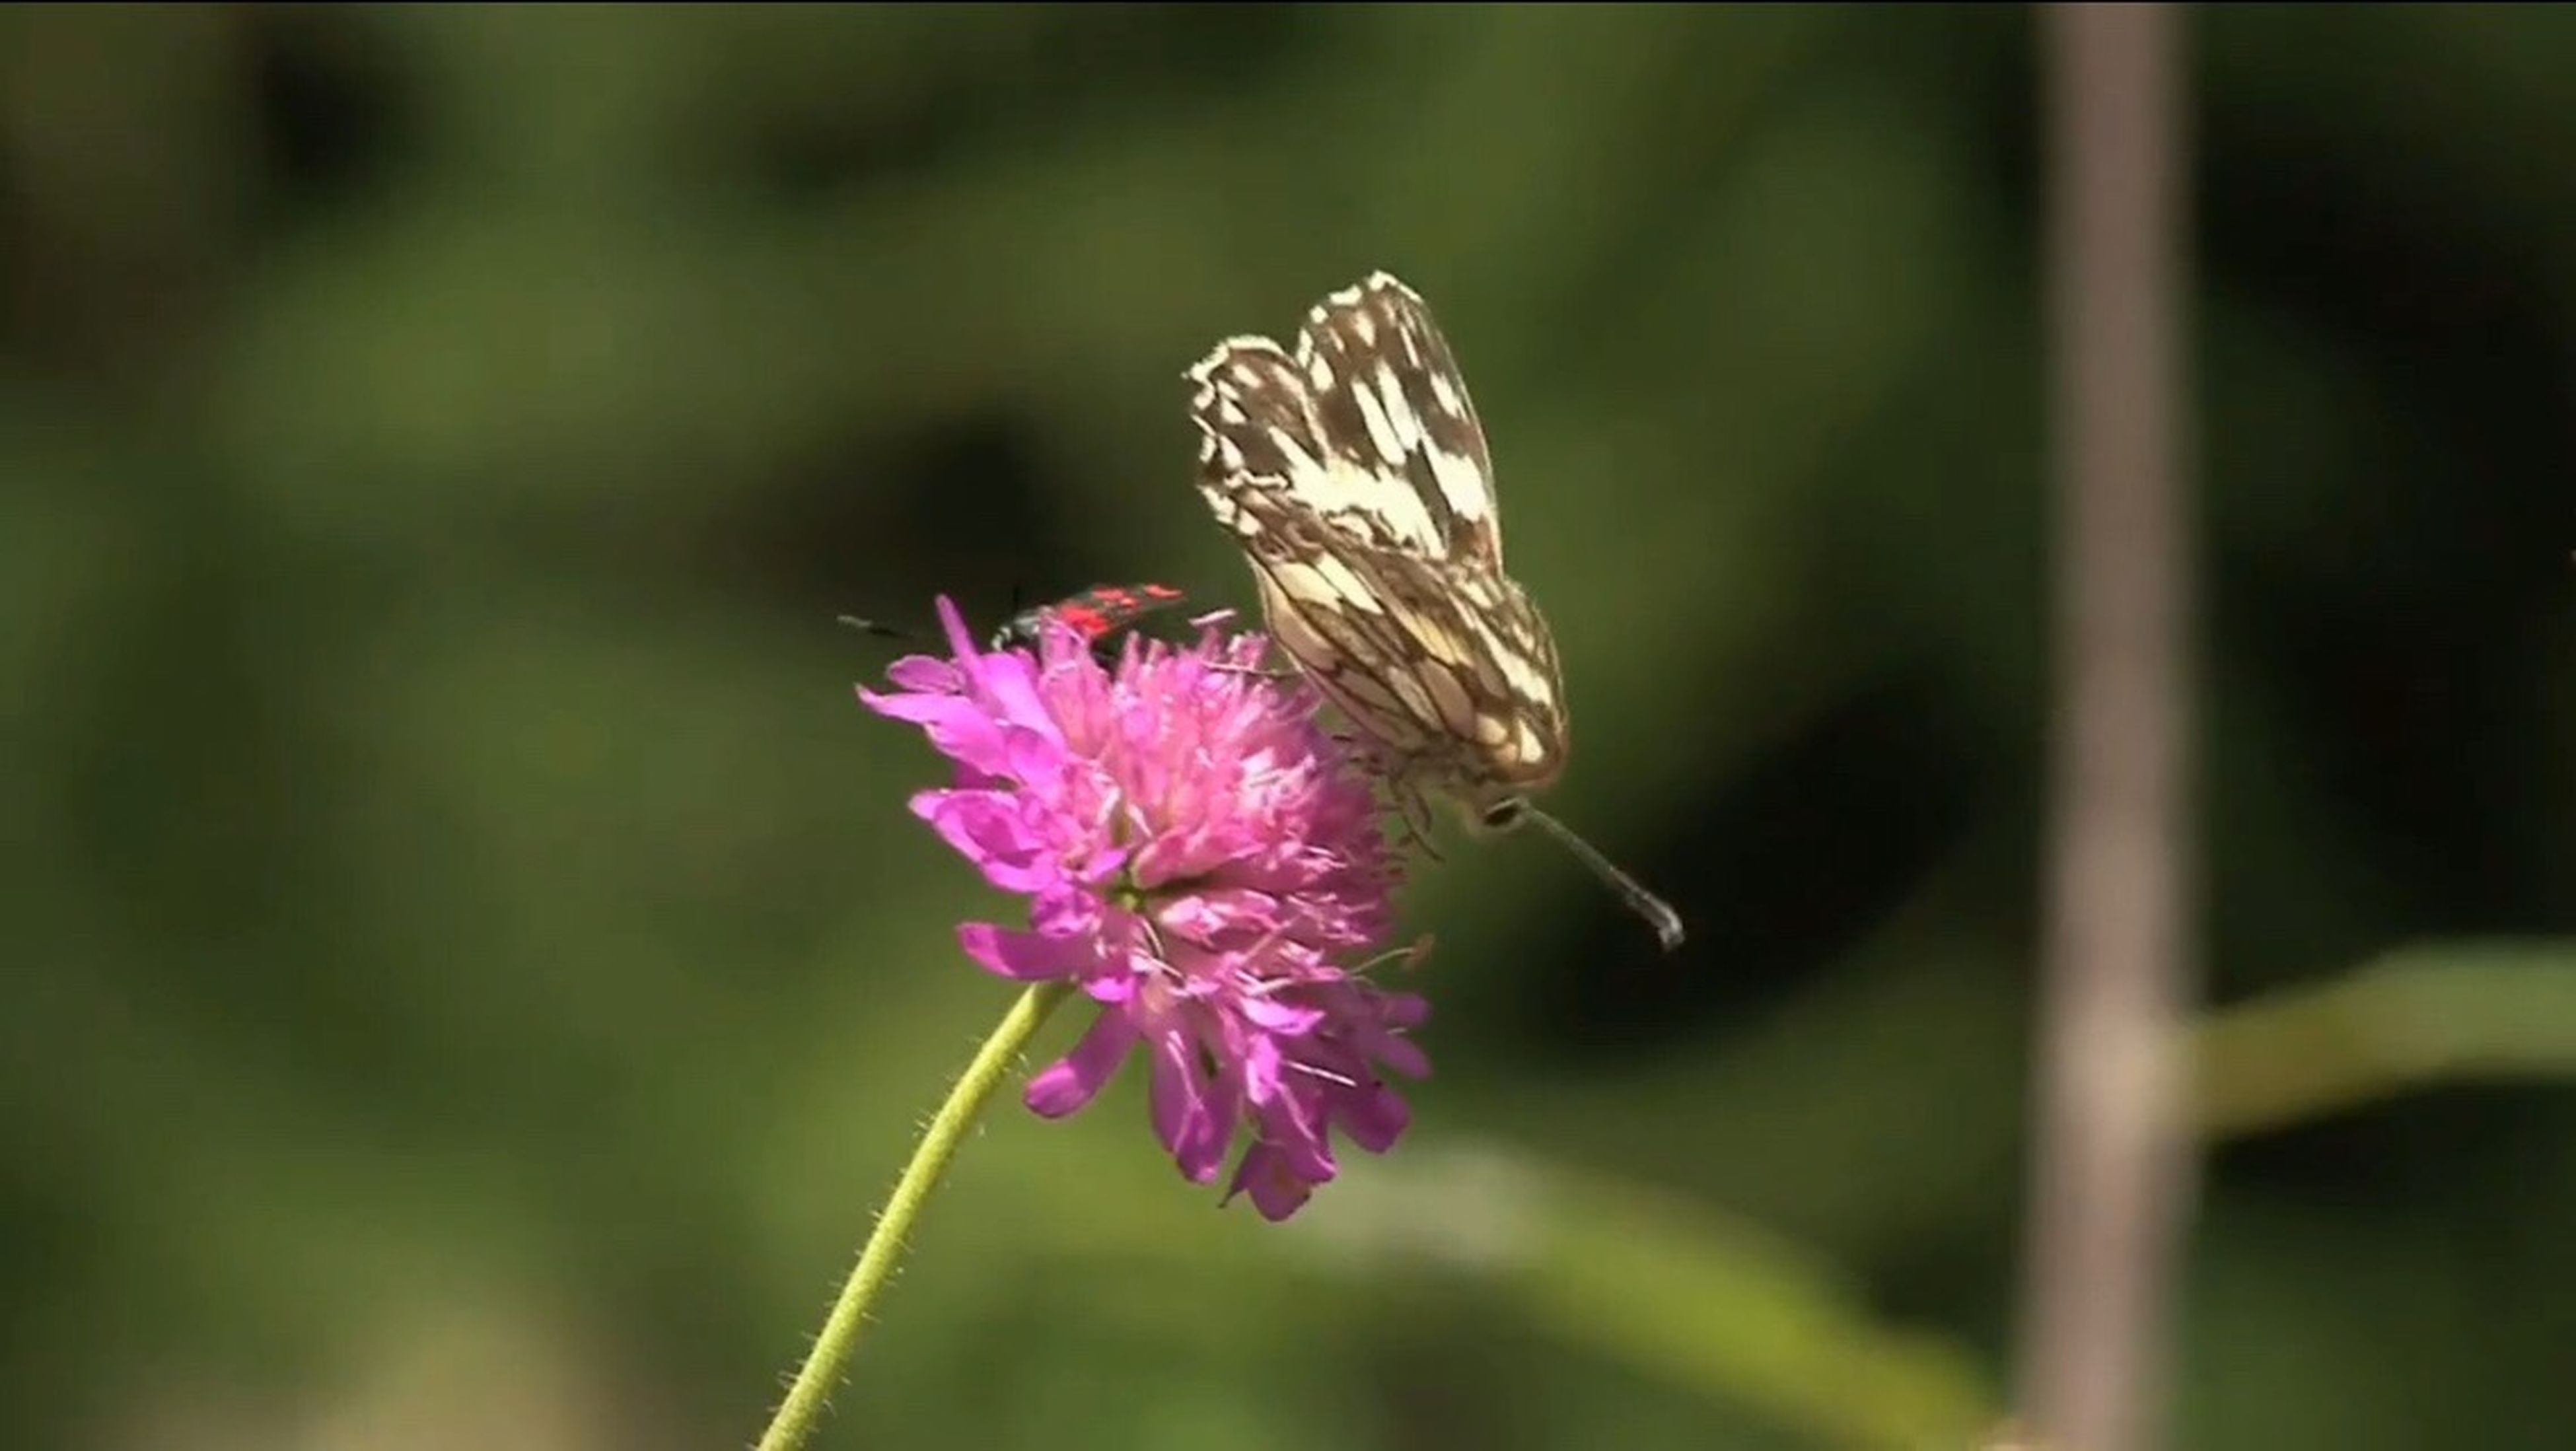 flower, insect, wildlife, fragility, focus on foreground, freshness, beauty in nature, petal, pink color, close-up, pollination, butterfly - insect, growth, butterfly, nature, flower head, plant, purple, blooming, stem, day, outdoors, selective focus, no people, blossom, in bloom, botany, animal markings